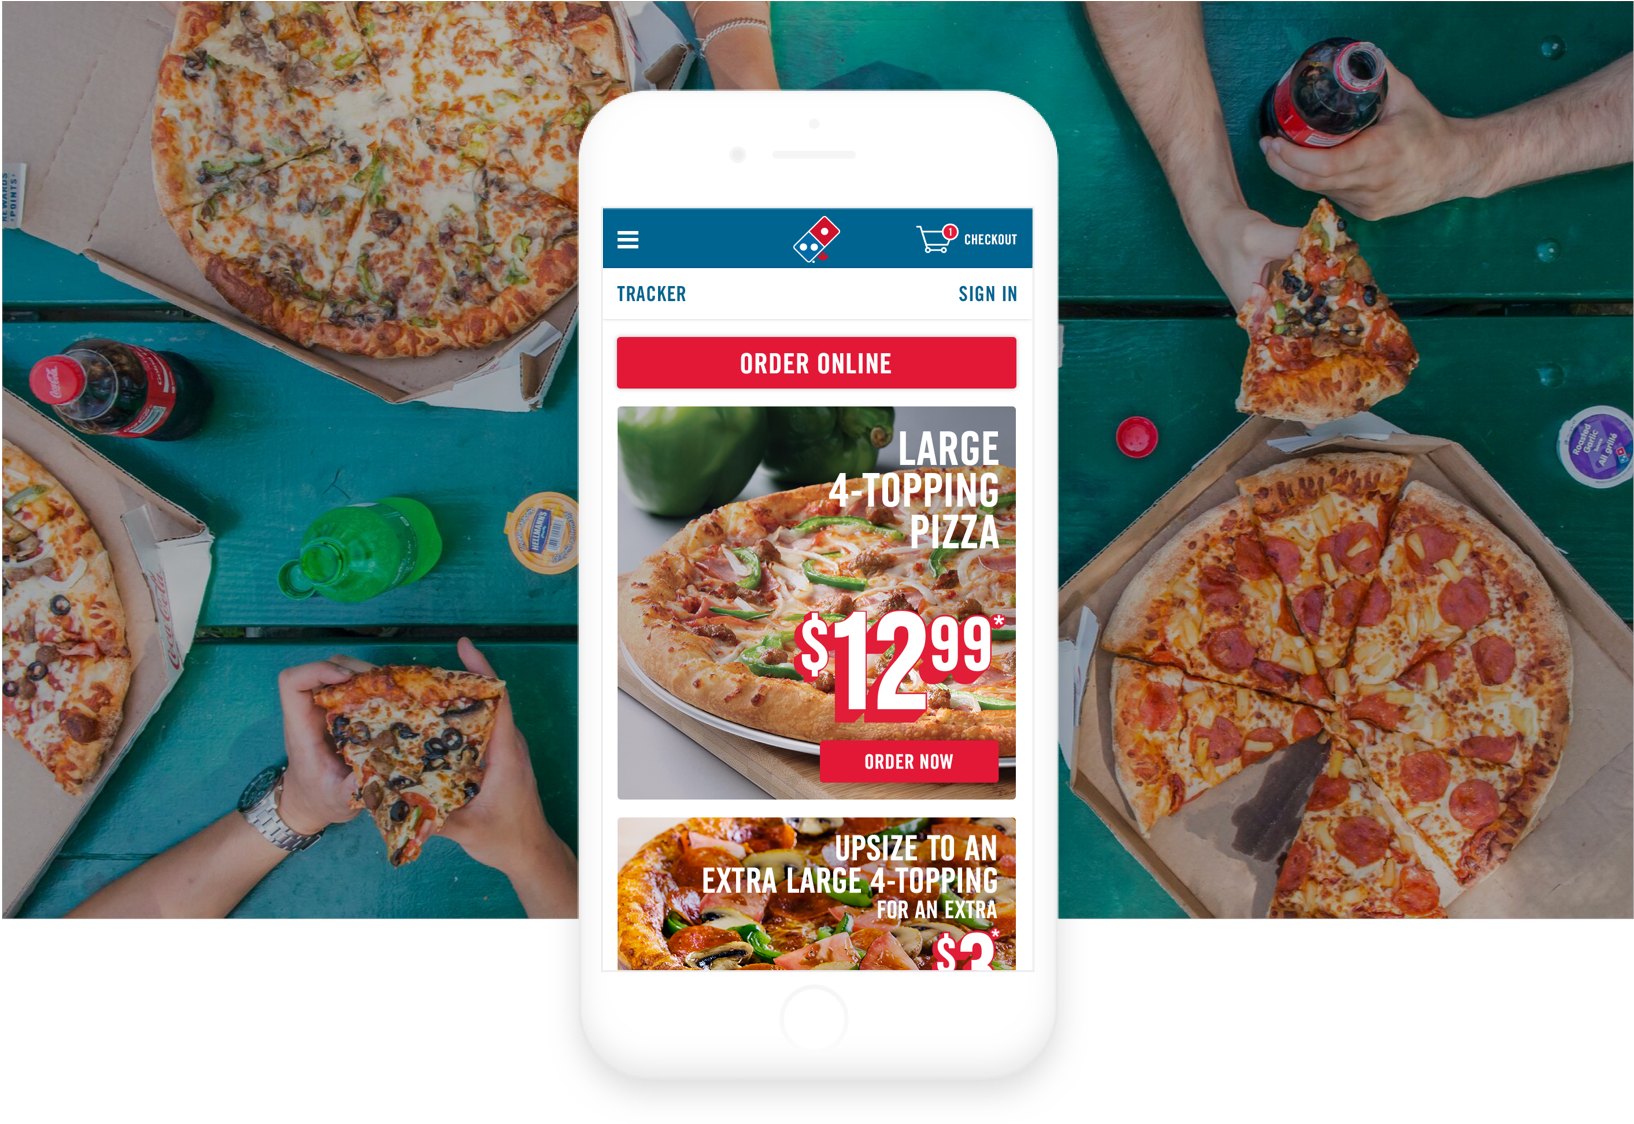 Domino's mobile image